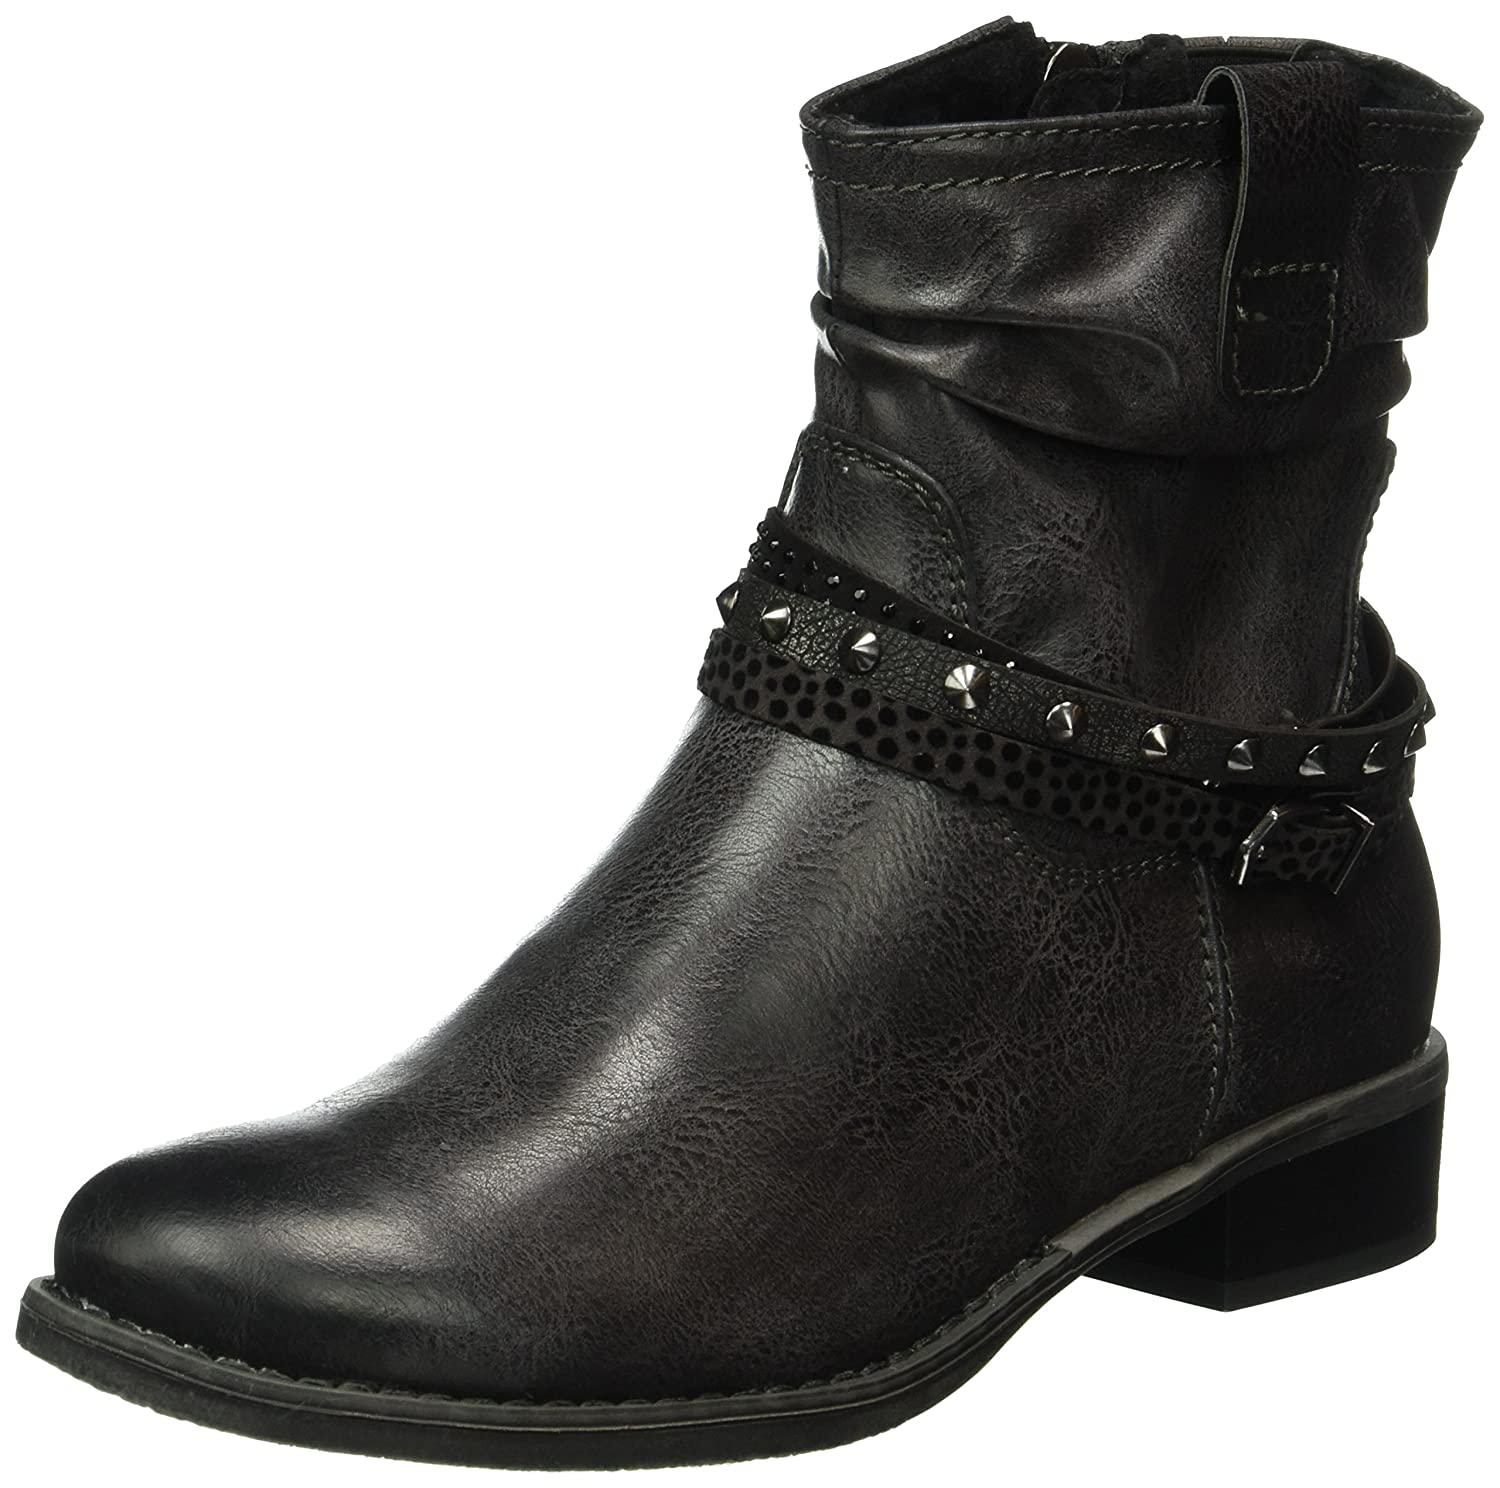 Womens 25364 Ankle Boots Marco Tozzi Buy Cheap With Credit Card Cheap Eastbay Best Sale Cheap Online Q7EZ0